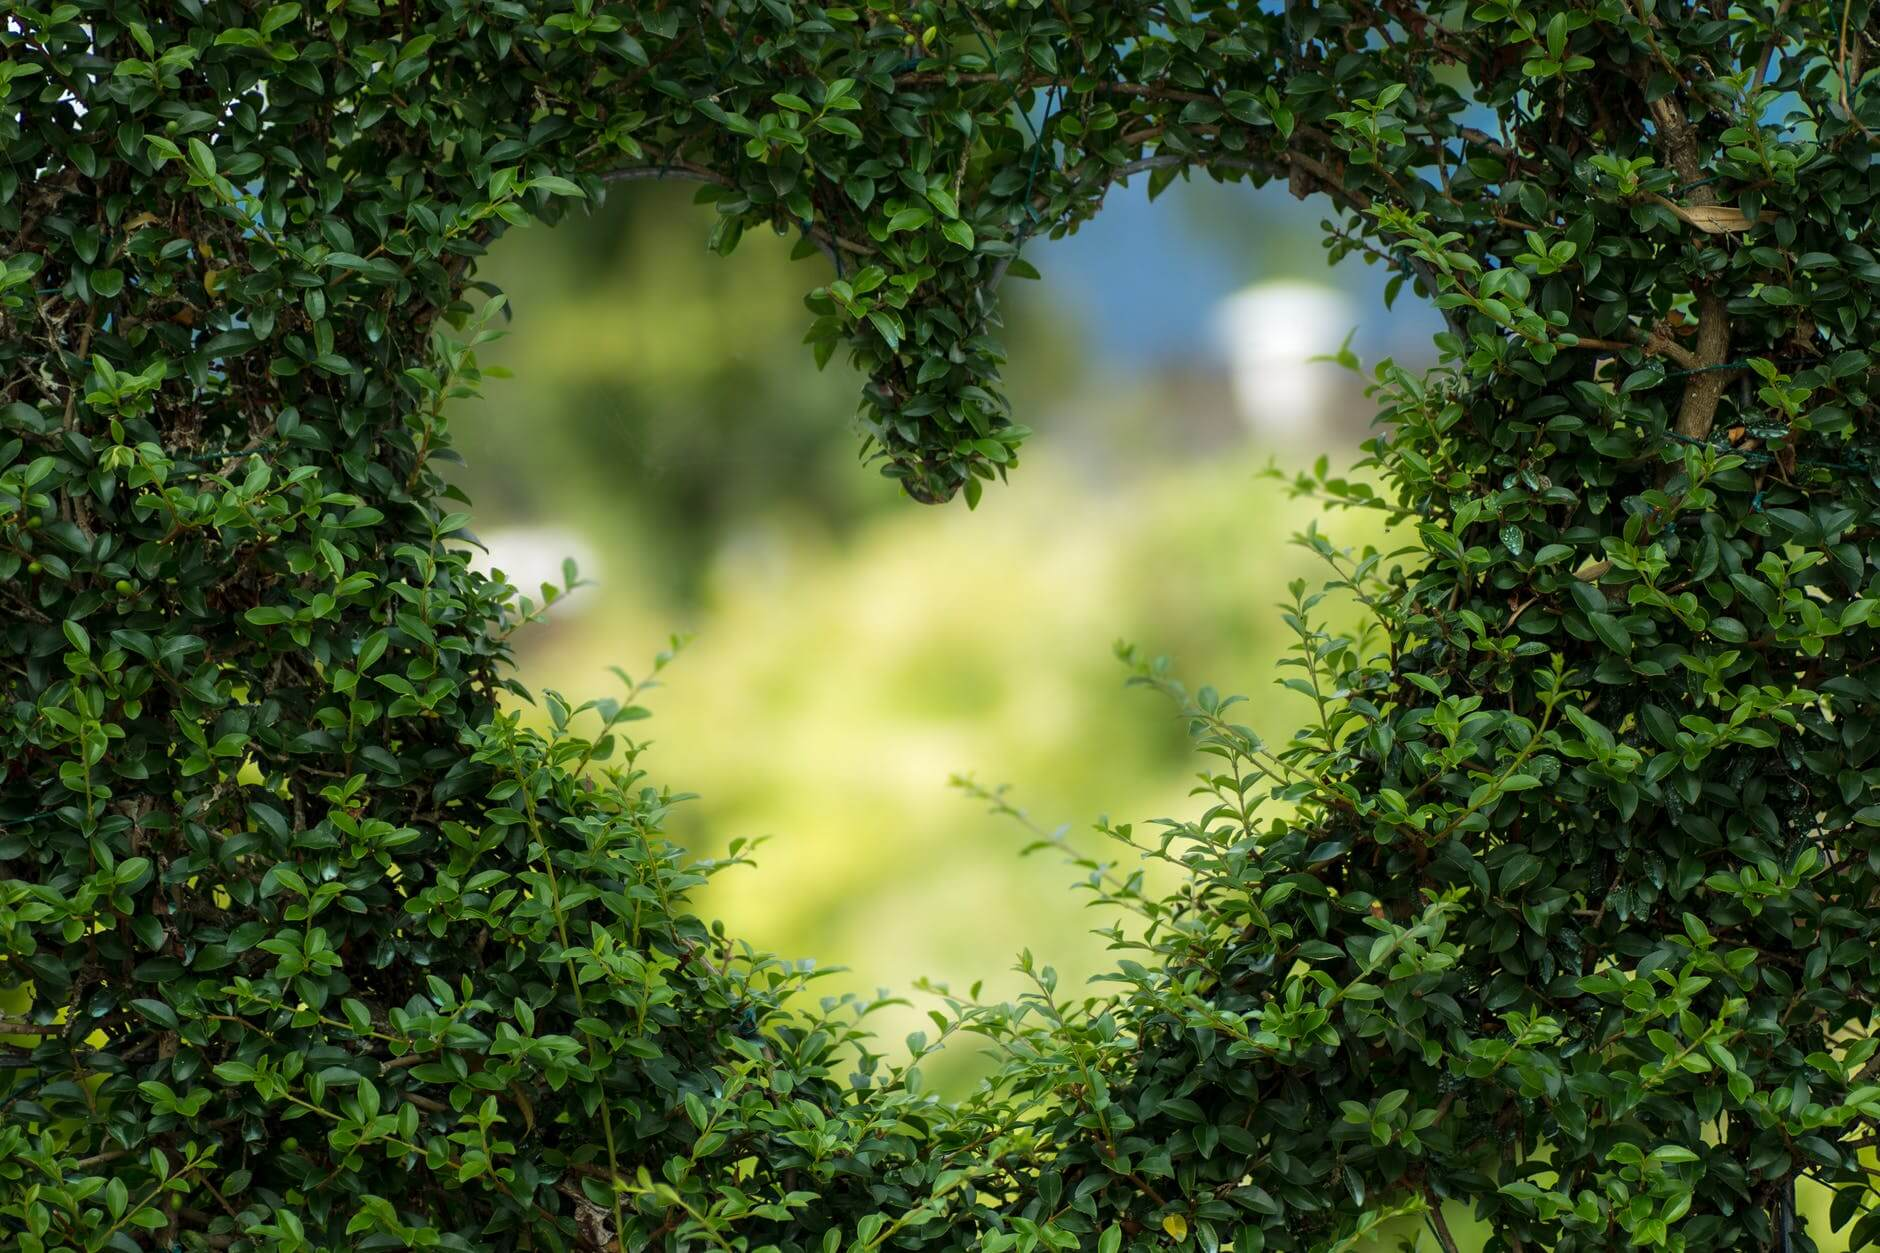 A heart cut out of a green shrubbery. Pets for seniors provide love and comfort.